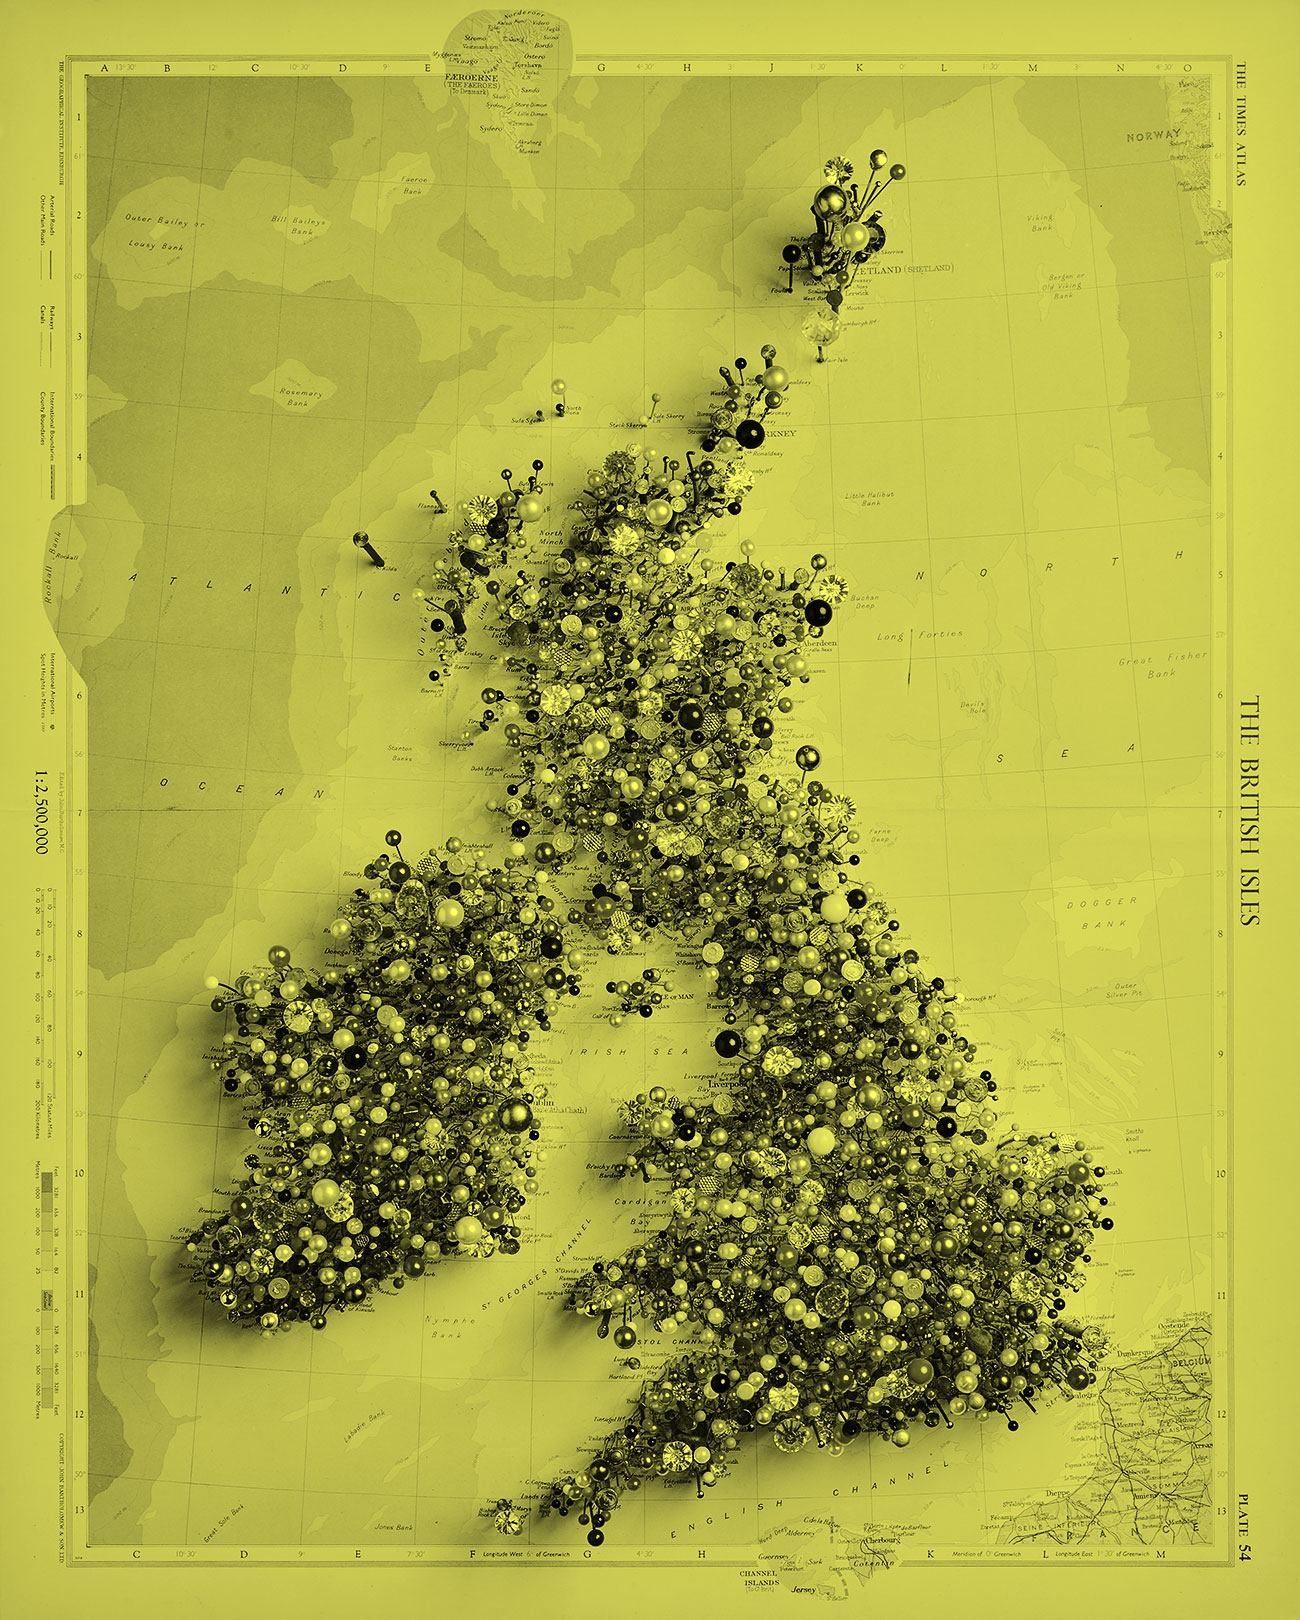 Chris Kenny Fetish Map of the British Isles©Chris Kenny, photo Gabriel Kenny Ryder